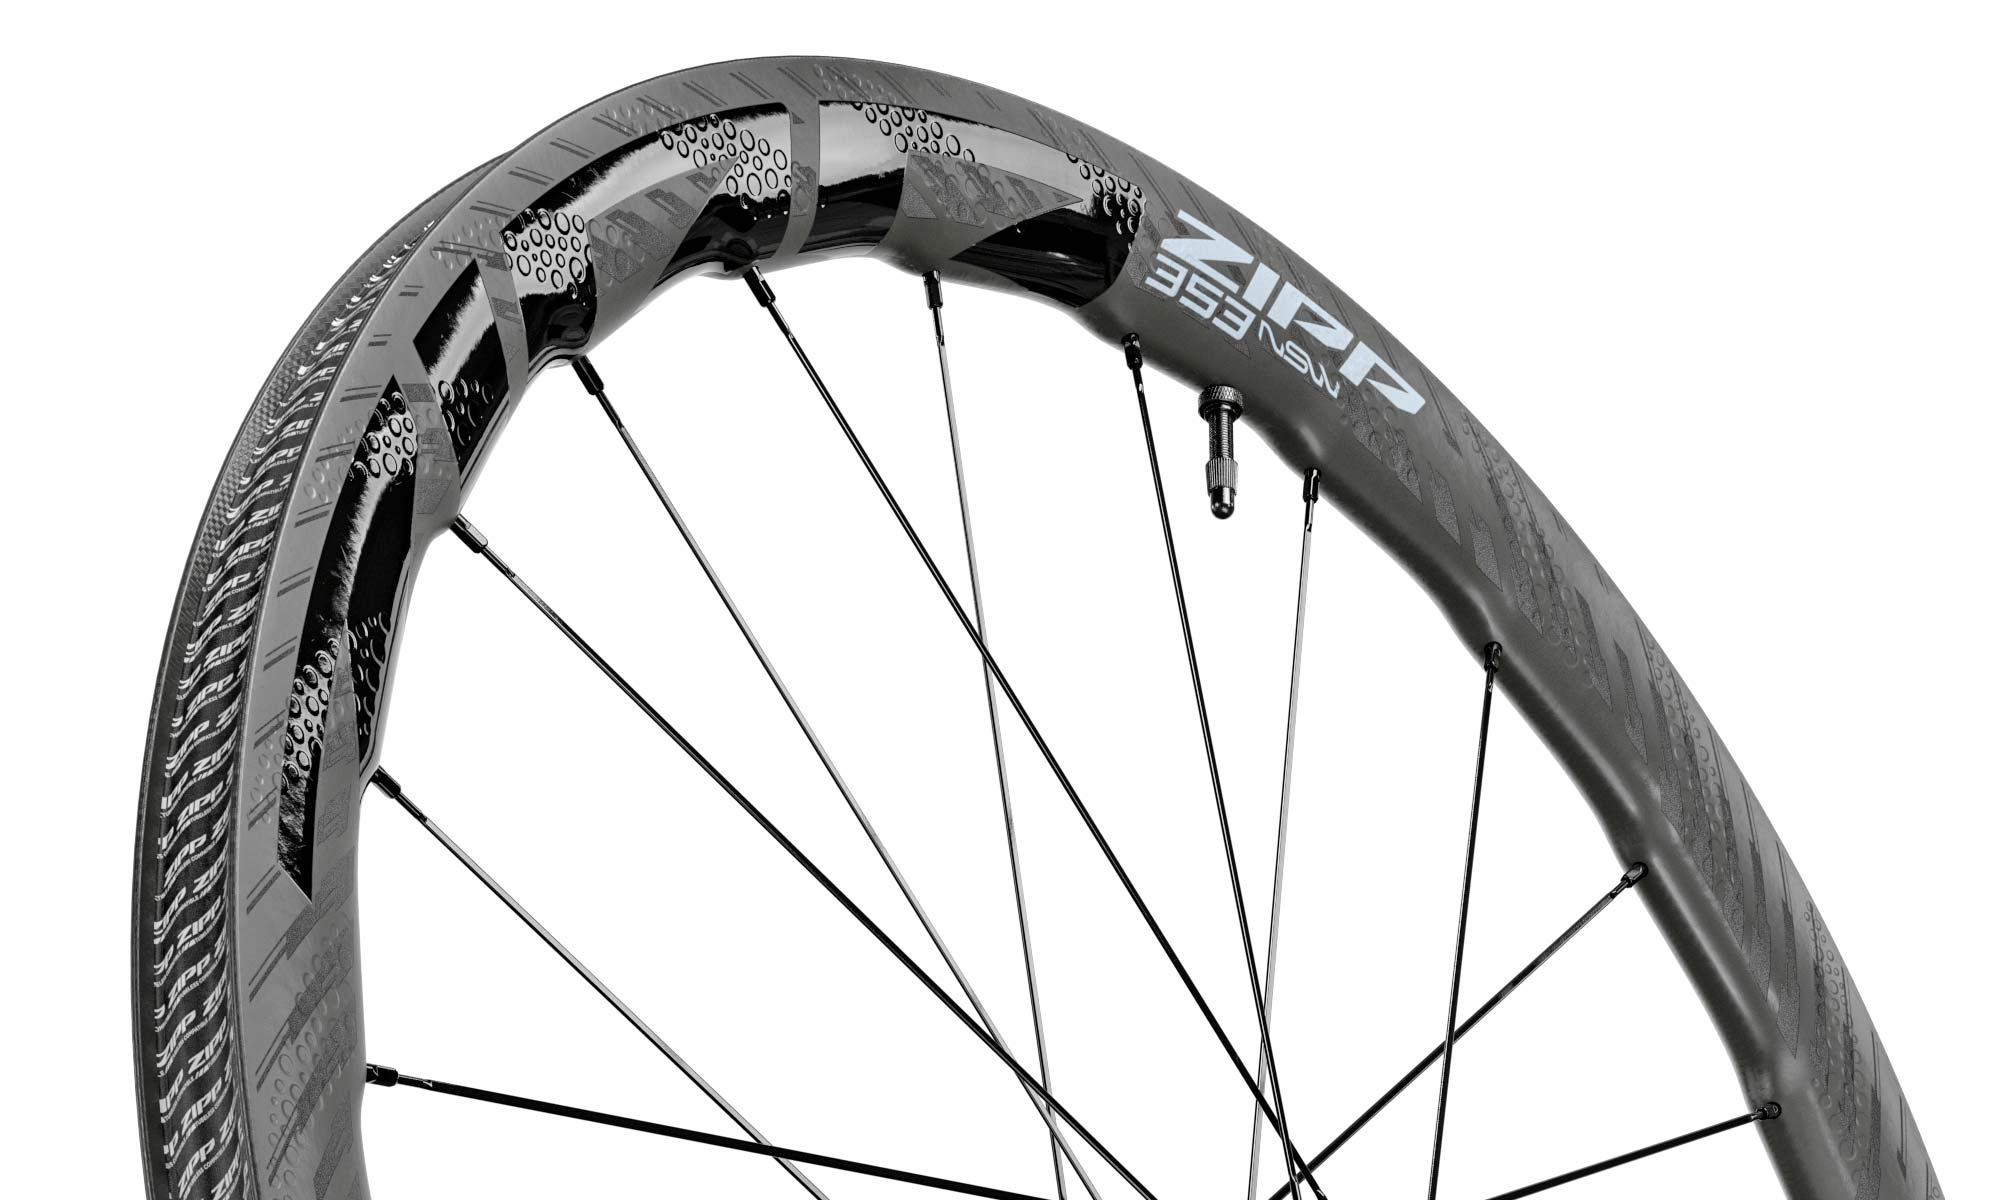 Zipp 353 NSW tubeless wheels, ultra-wide 25mm internal hookless tubeless carbon disc brake road bike wheelset, rim detail